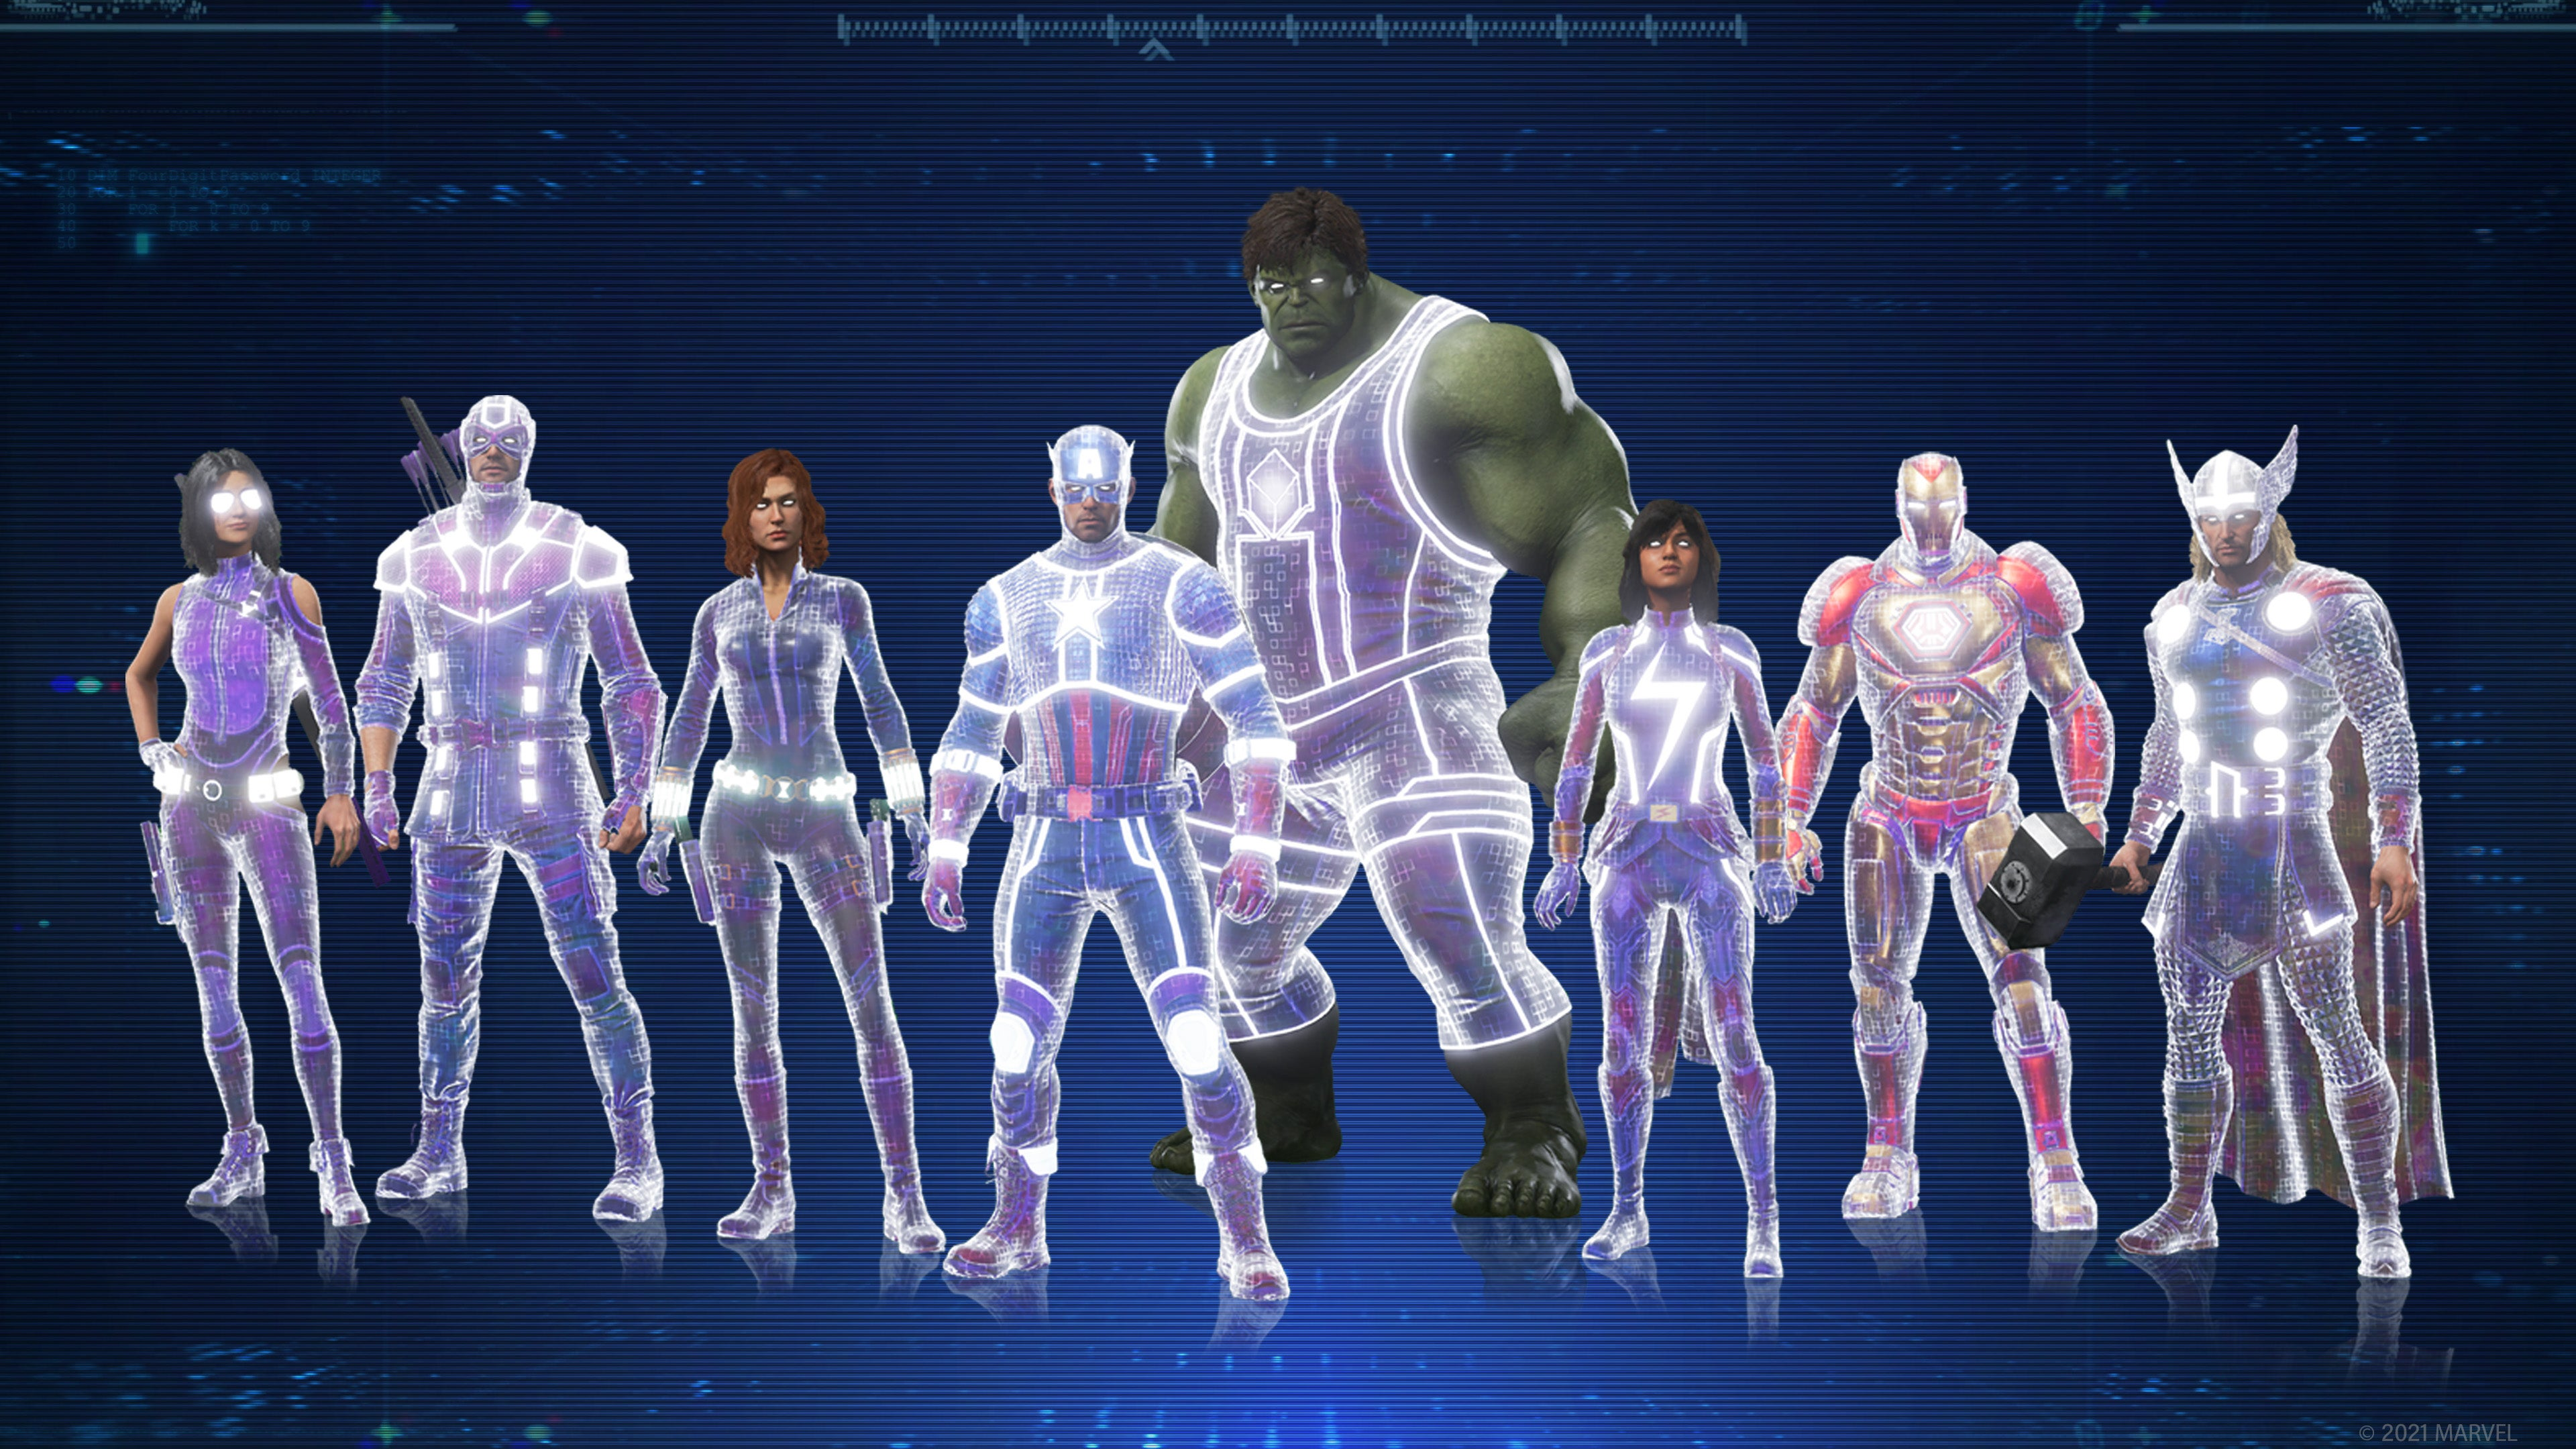 A screenshot of all of our Heroes lit up with cosmic energy. The outlines of all of their Outfits glow white, as if humming with energy.